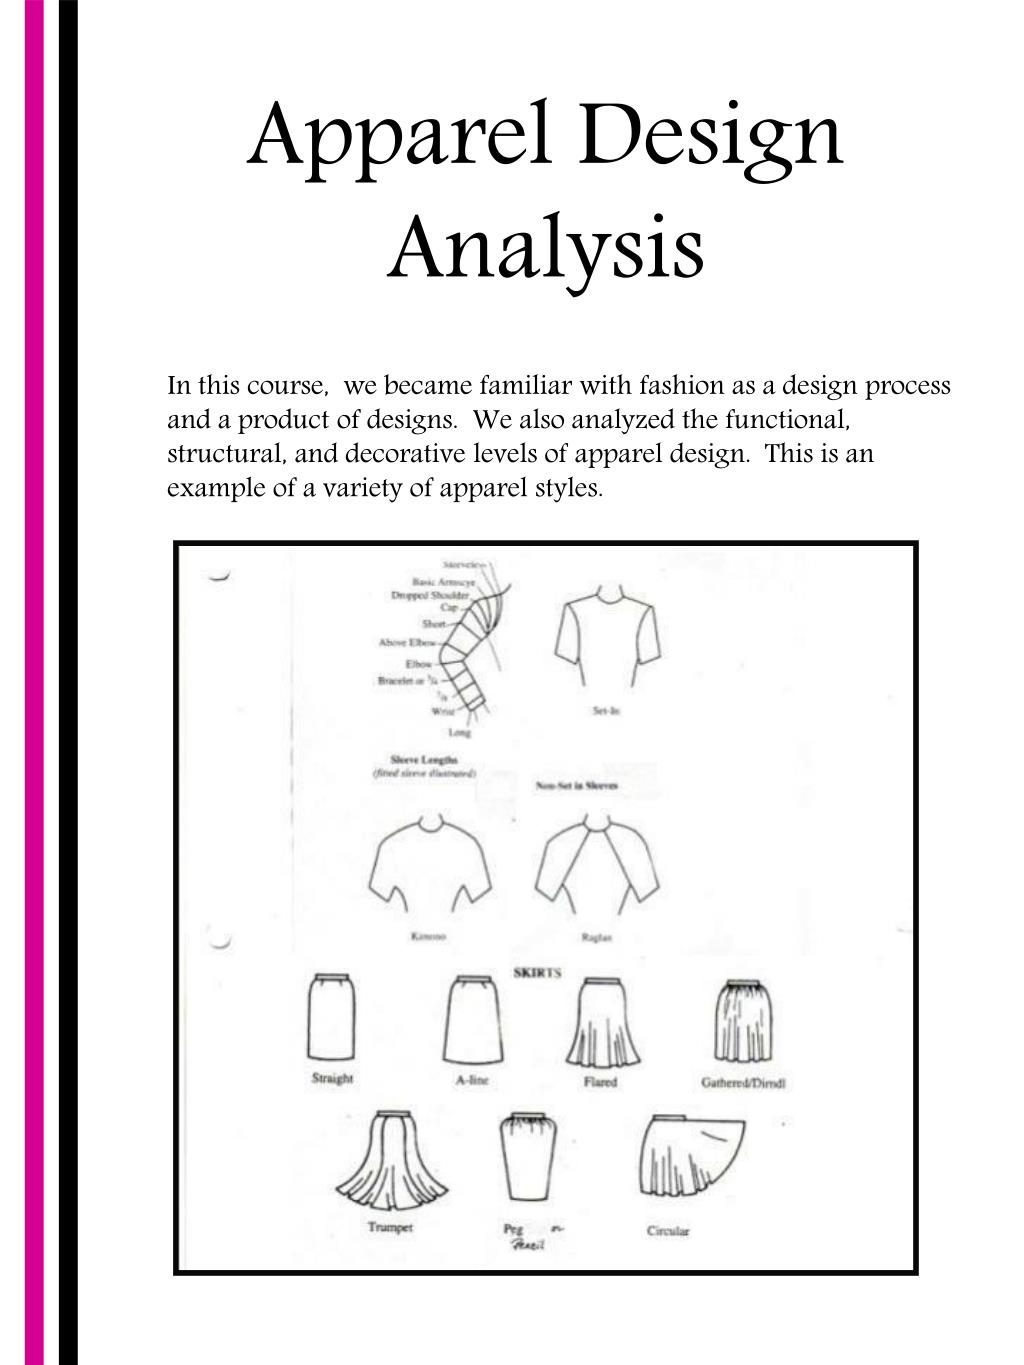 Apparel Design Analysis